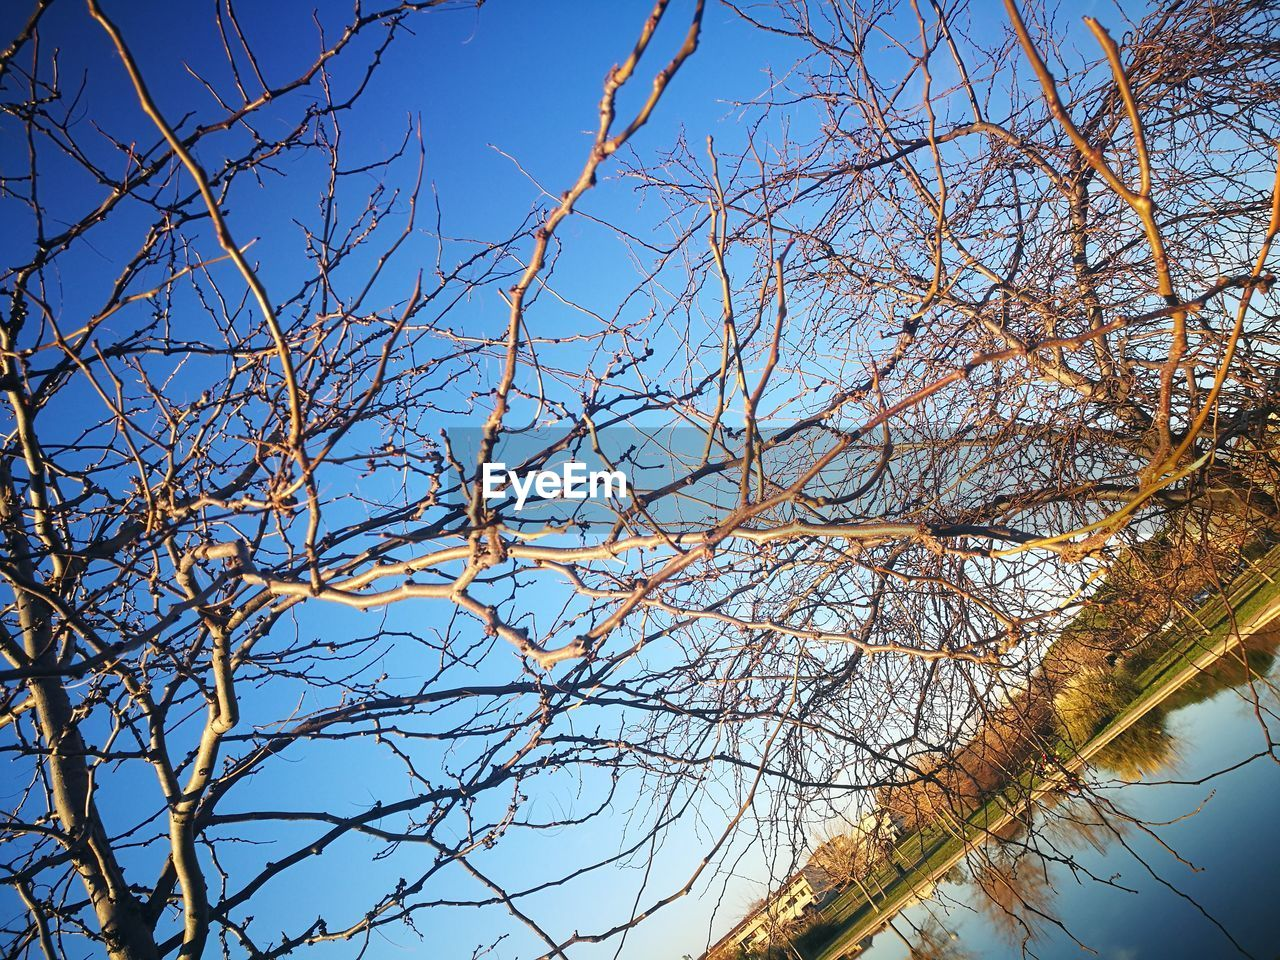 tree, branch, sky, low angle view, plant, nature, bare tree, tranquility, day, beauty in nature, no people, clear sky, outdoors, blue, growth, scenics - nature, sunlight, autumn, tree trunk, trunk